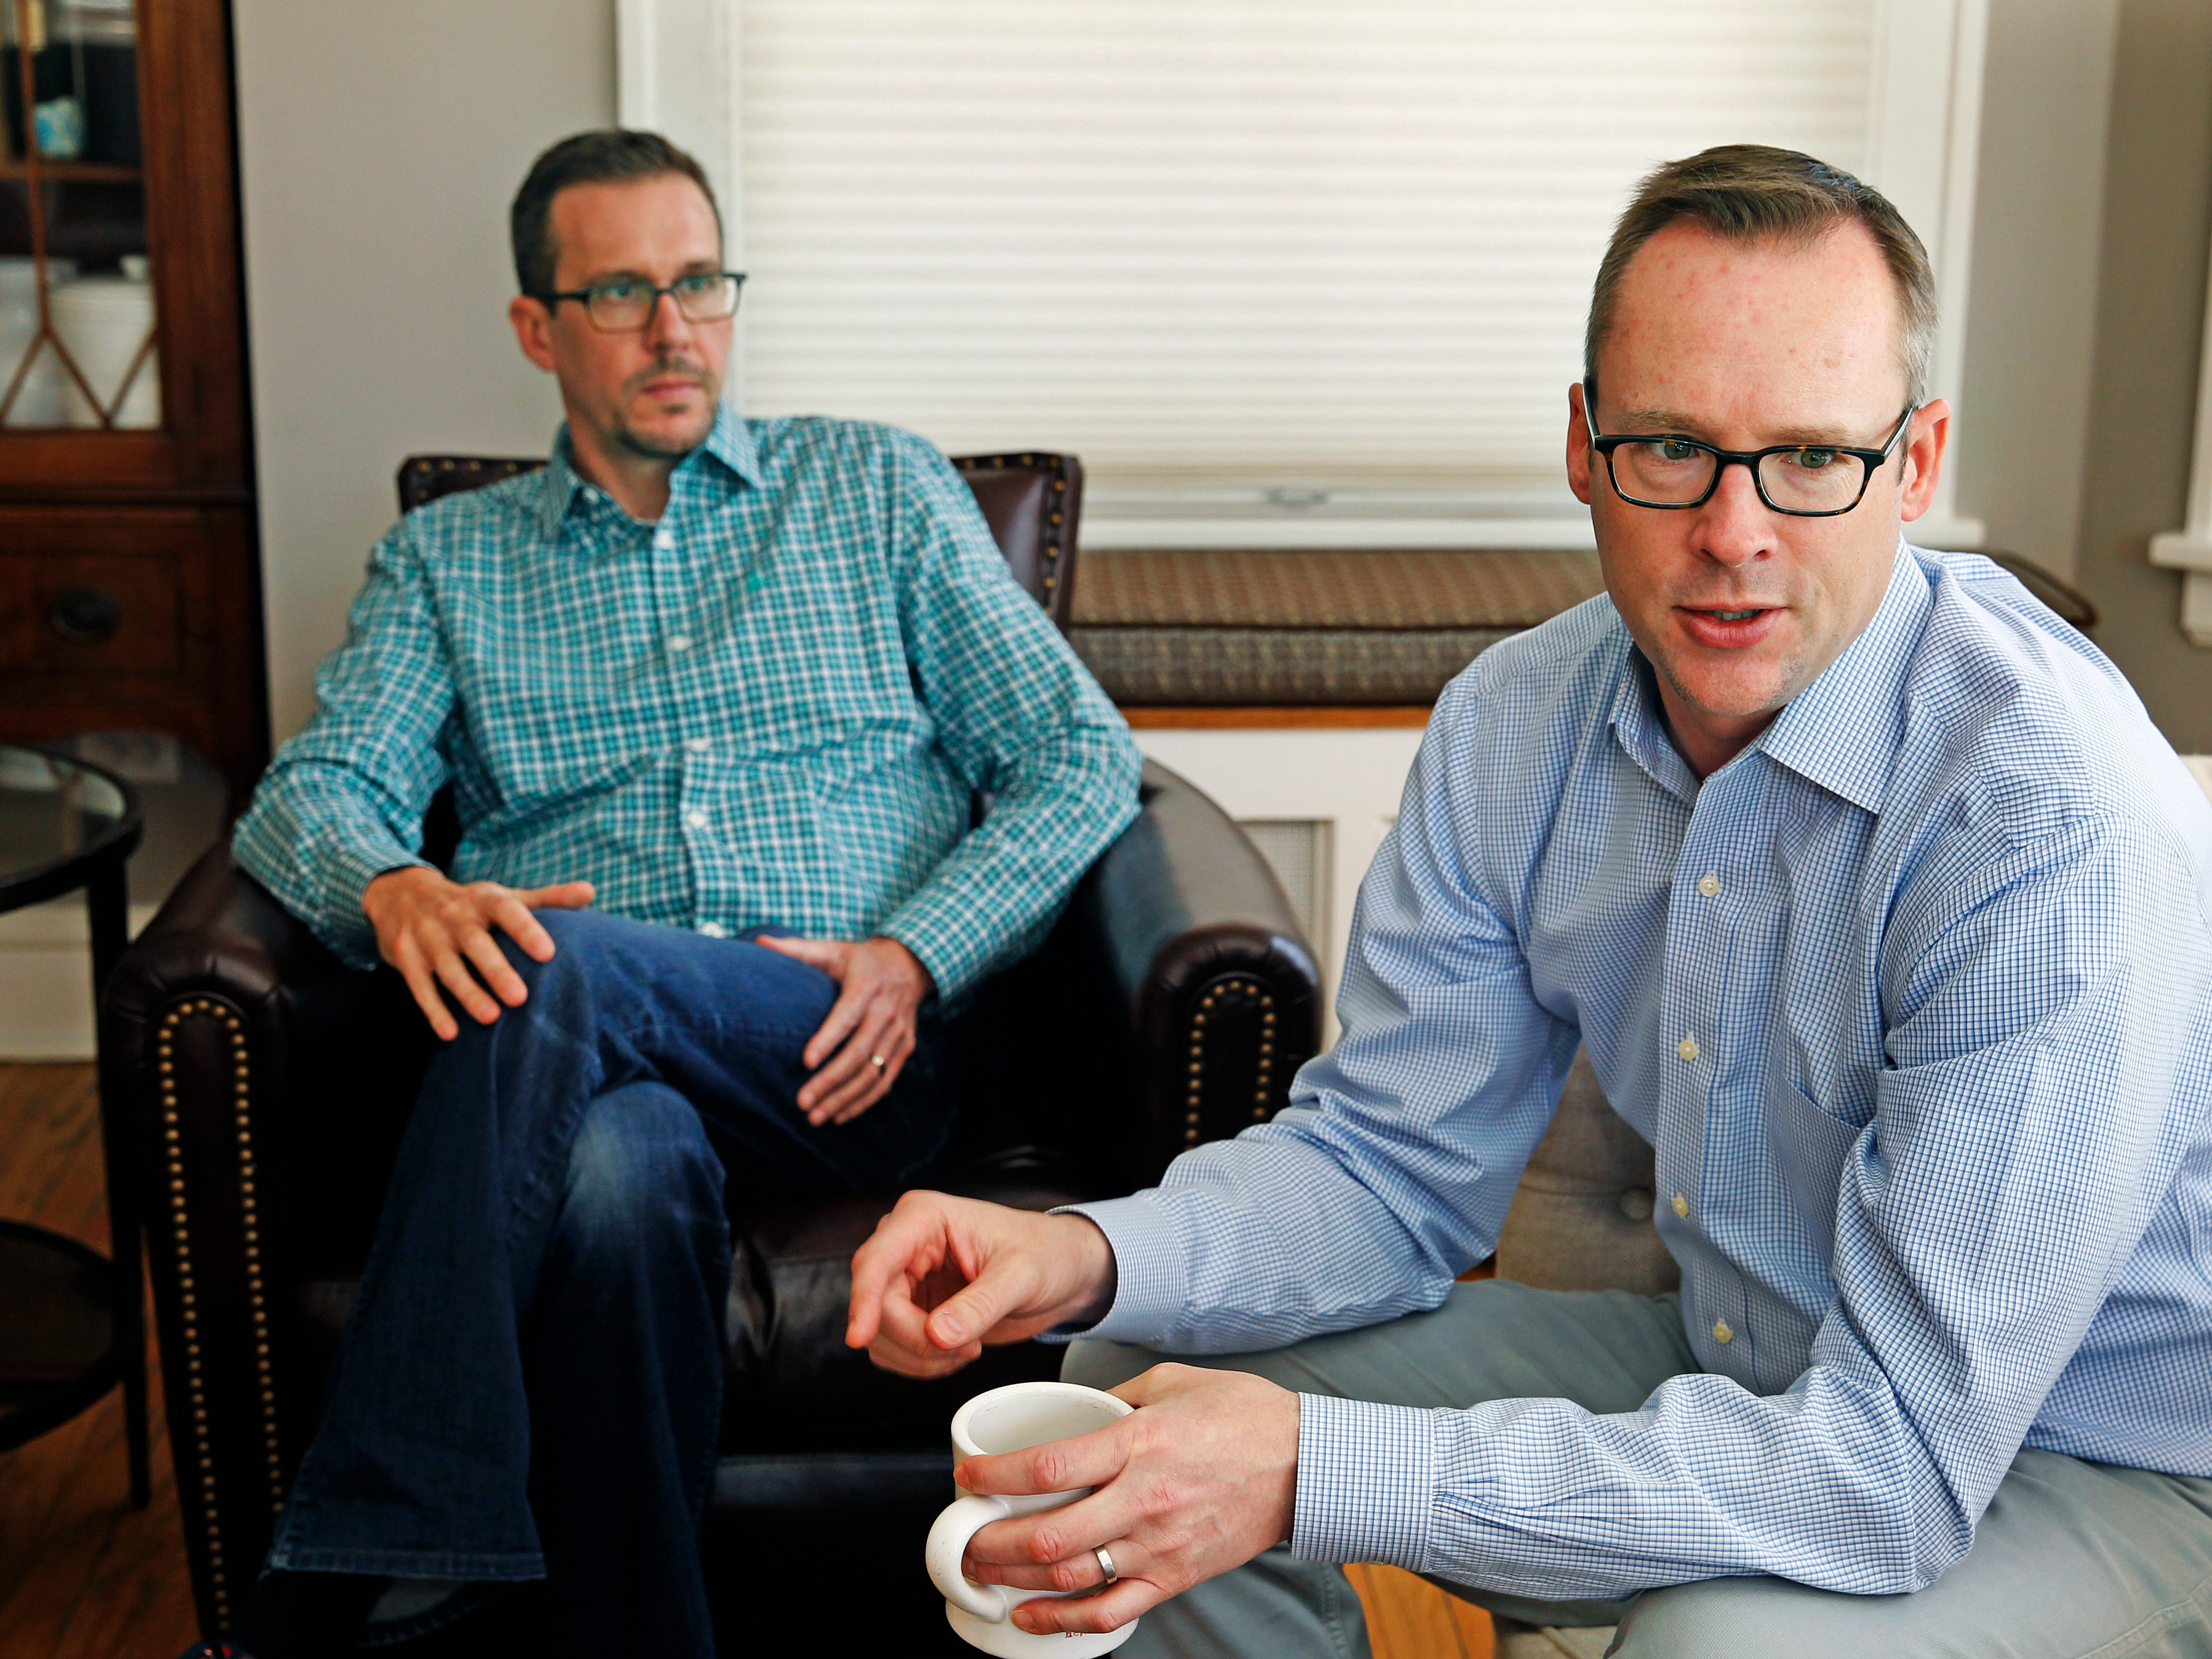 David Keeling (left) and Tim Daly, are two of the founders of EdNavigator.